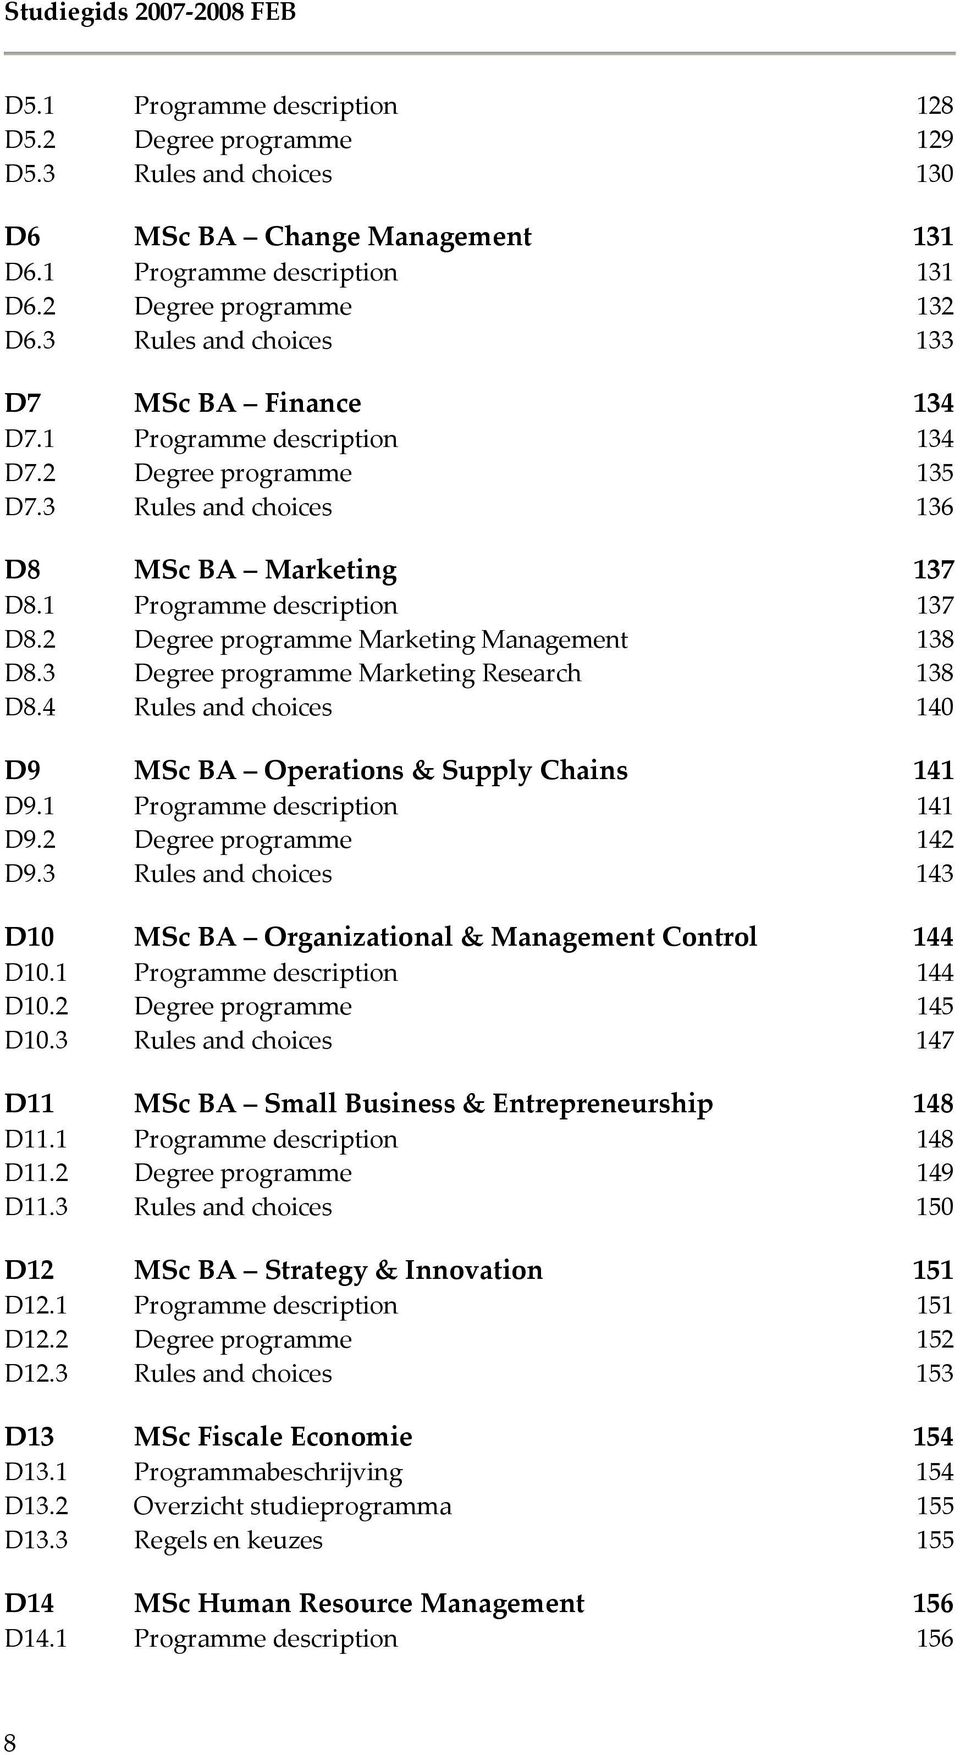 2 Degree programme Marketing Management 138 D8.3 Degree programme Marketing Research 138 D8.4 Rules and choices 140 D9 MSc BA Operations & Supply Chains 141 D9.1 Programme description 141 D9.